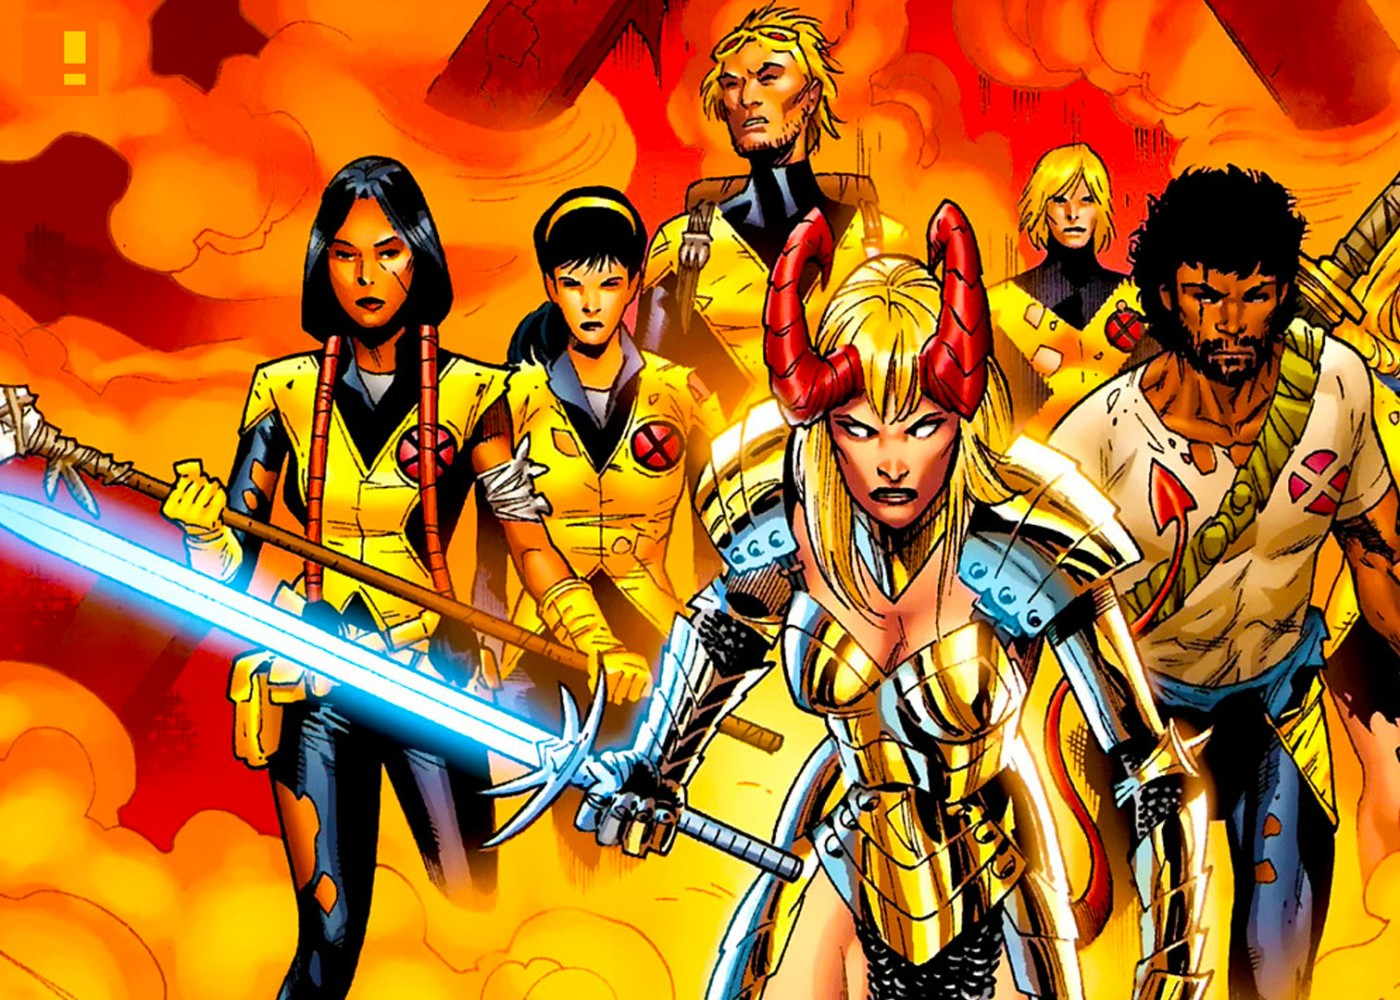 new mutants, mutants, fox, marvel, x-men